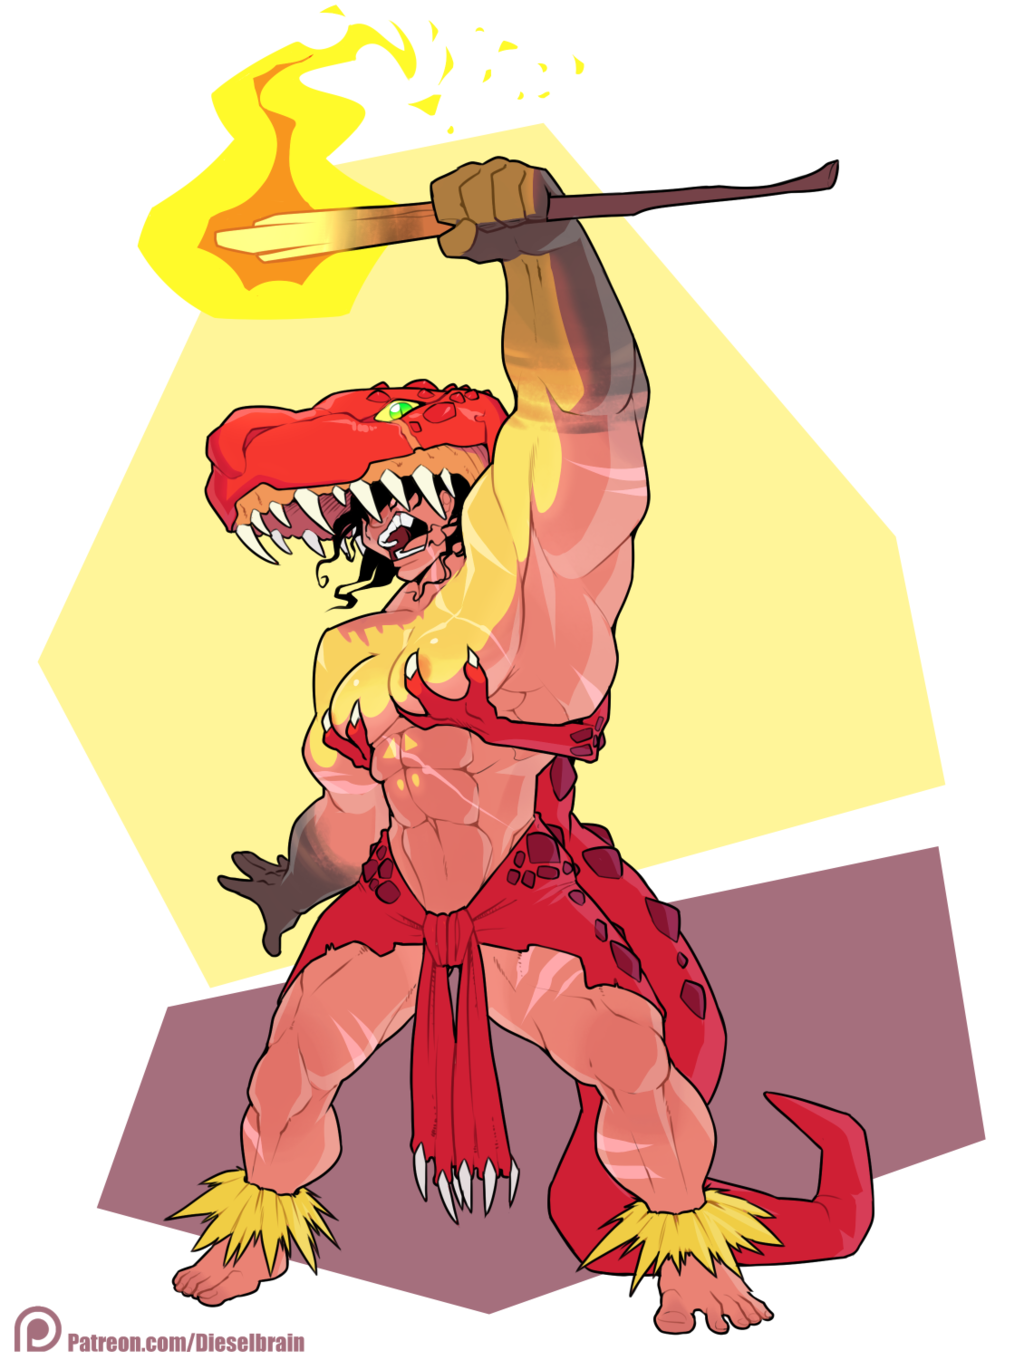 Most recent image: Dinosaur Witch